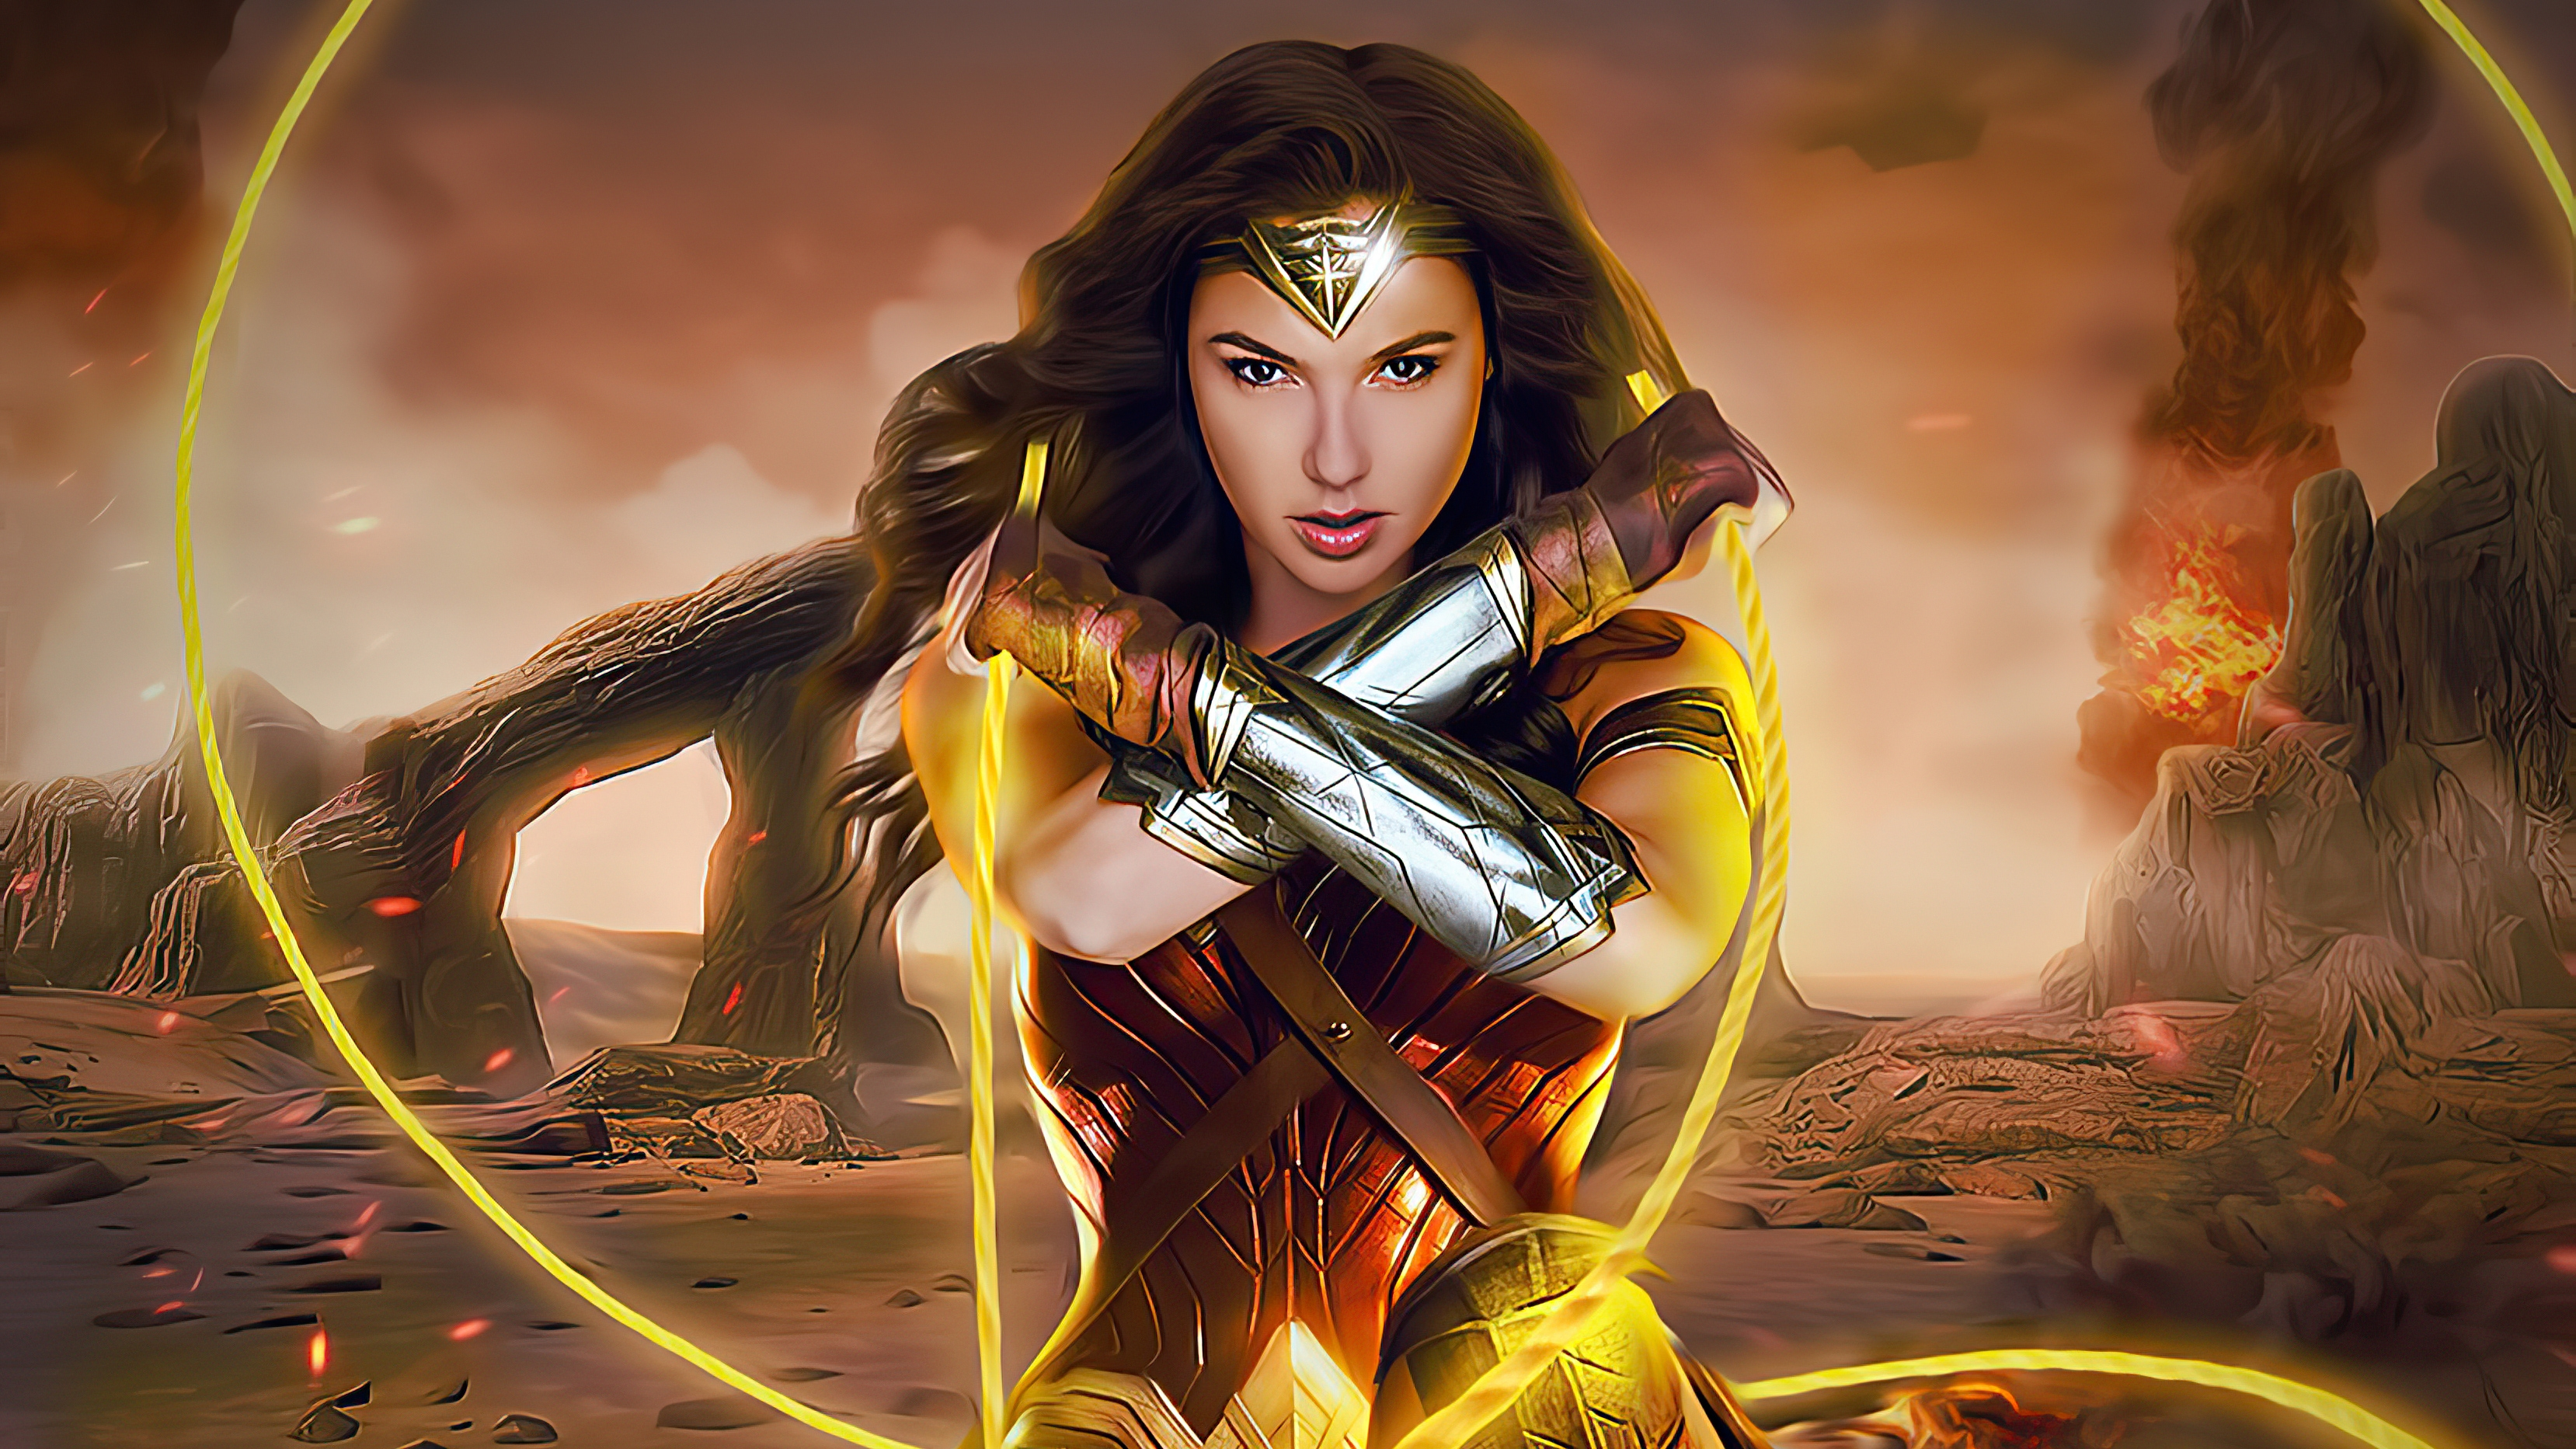 30 wonder woman hd wallpapers backgrounds 30 wonder woman hd wallpapers backgrounds